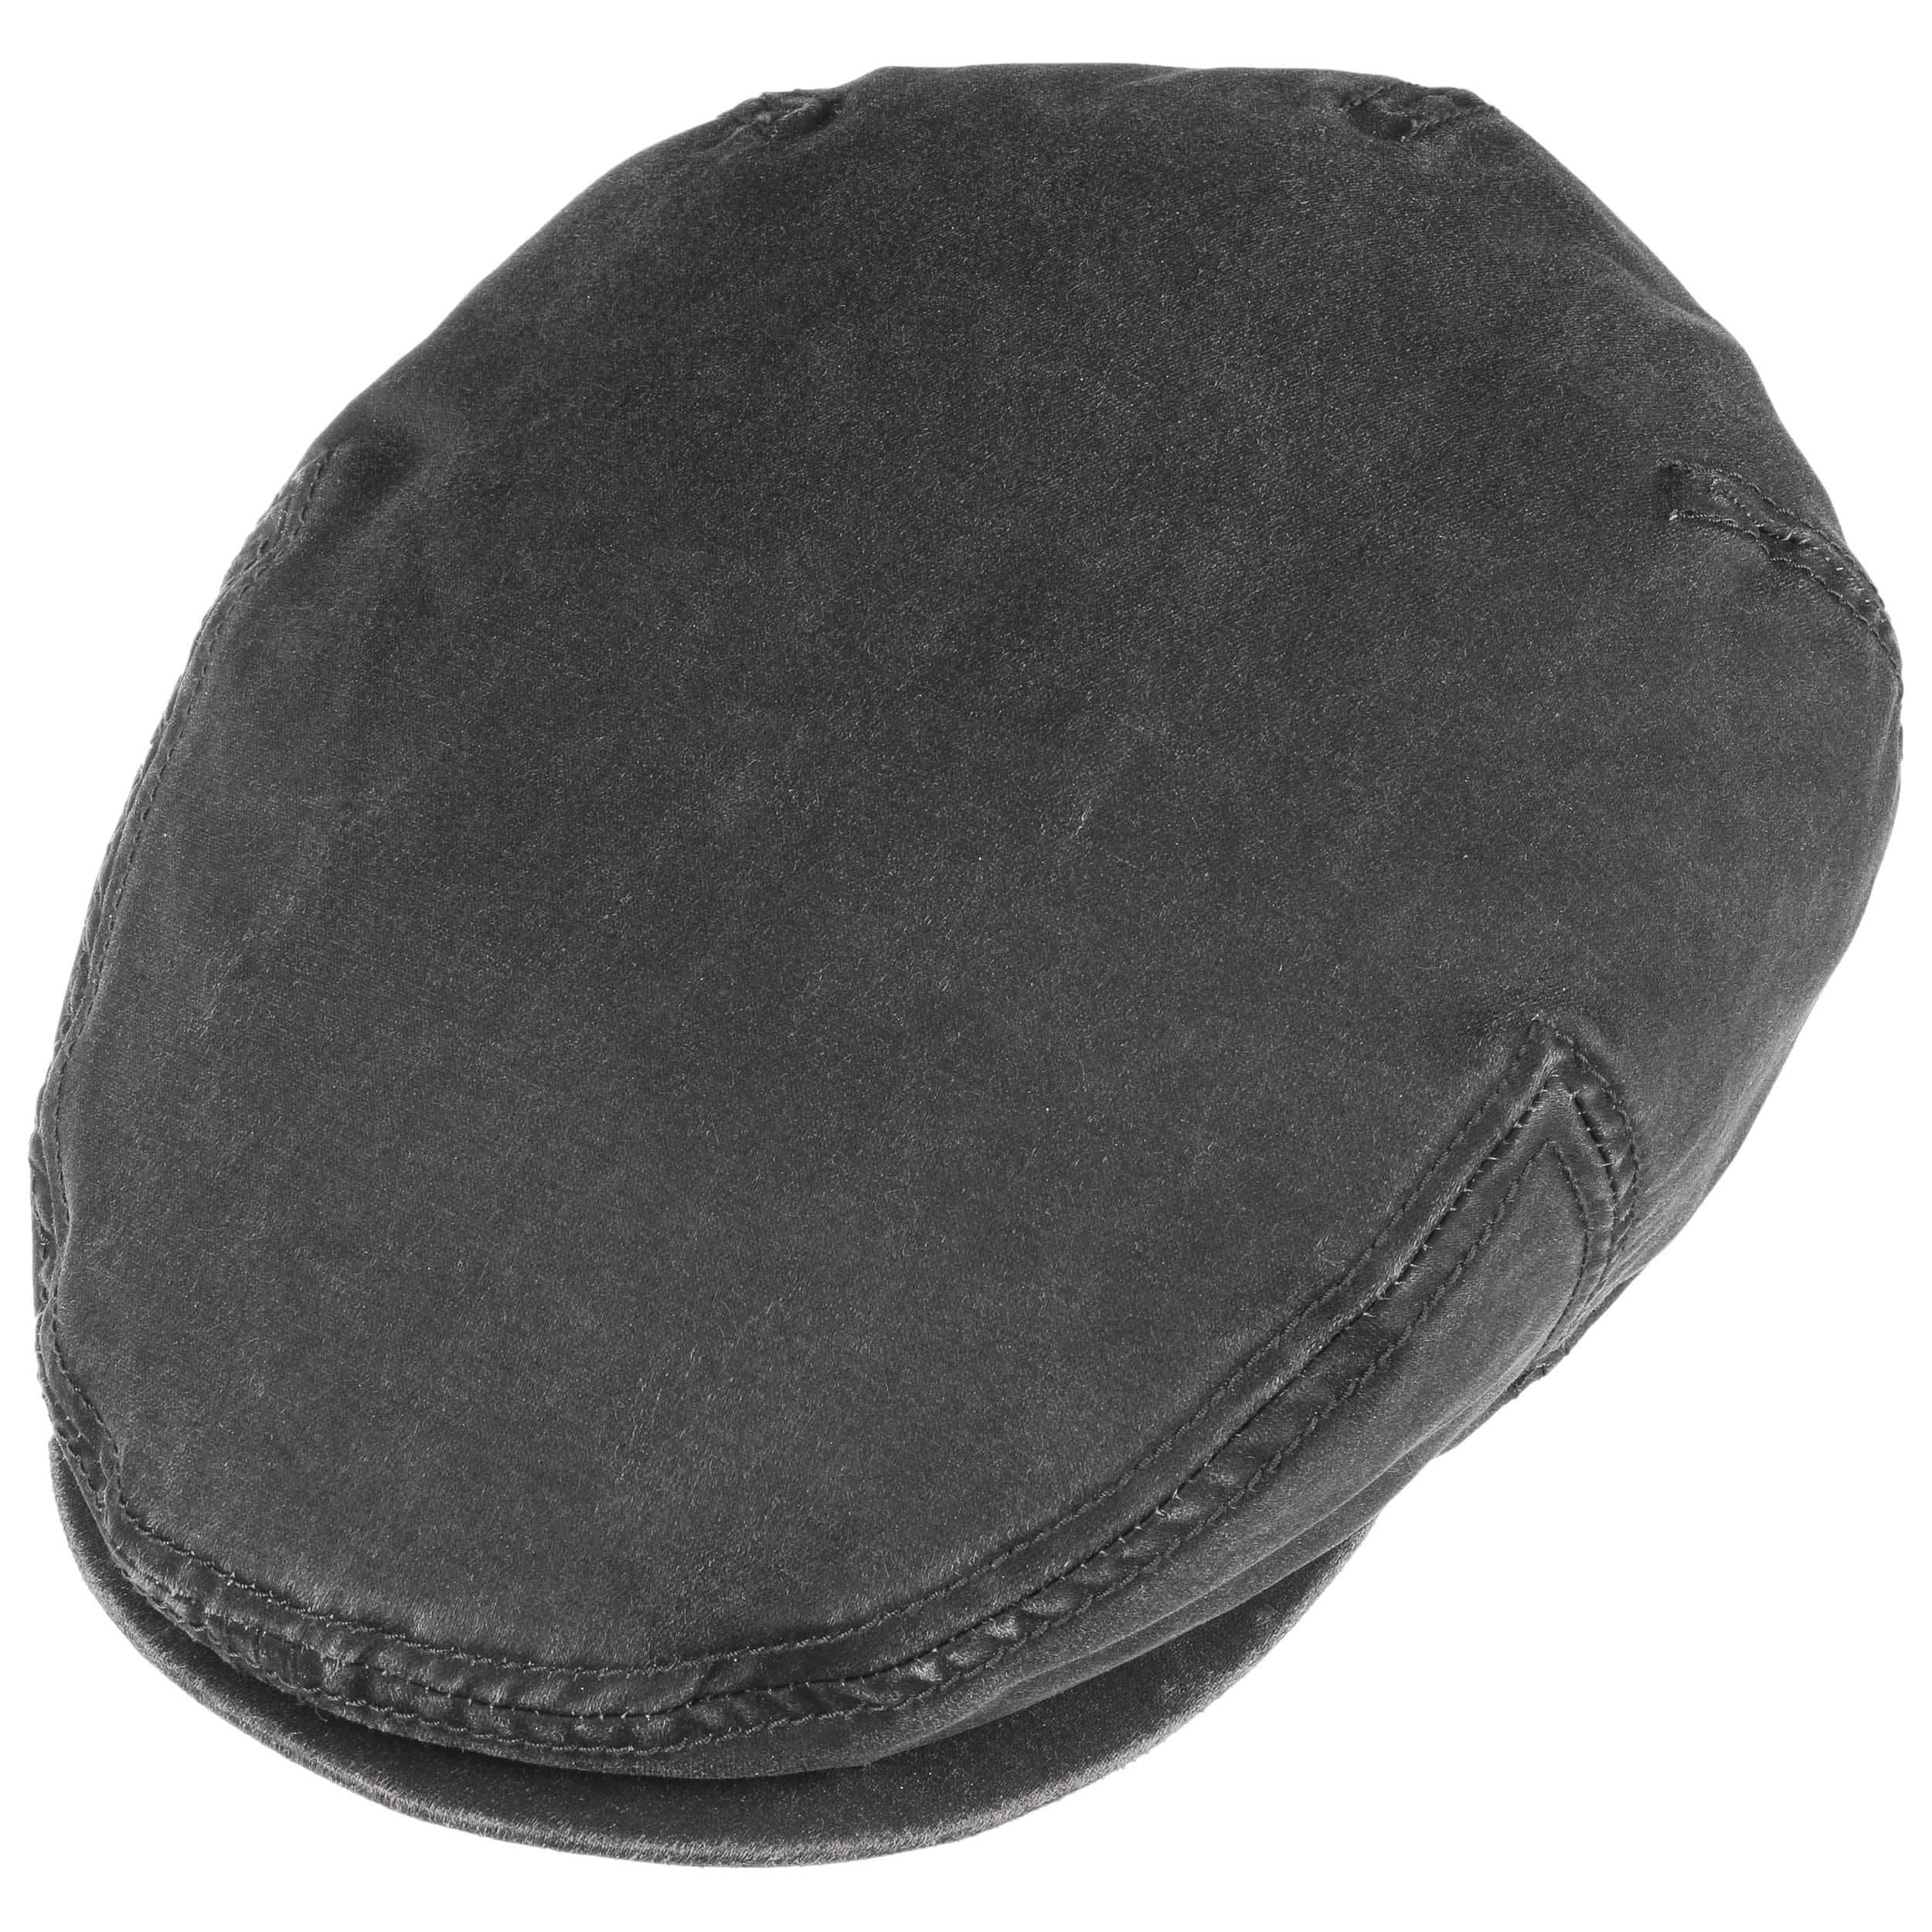 Kent Flat Cap with Ear Flaps black